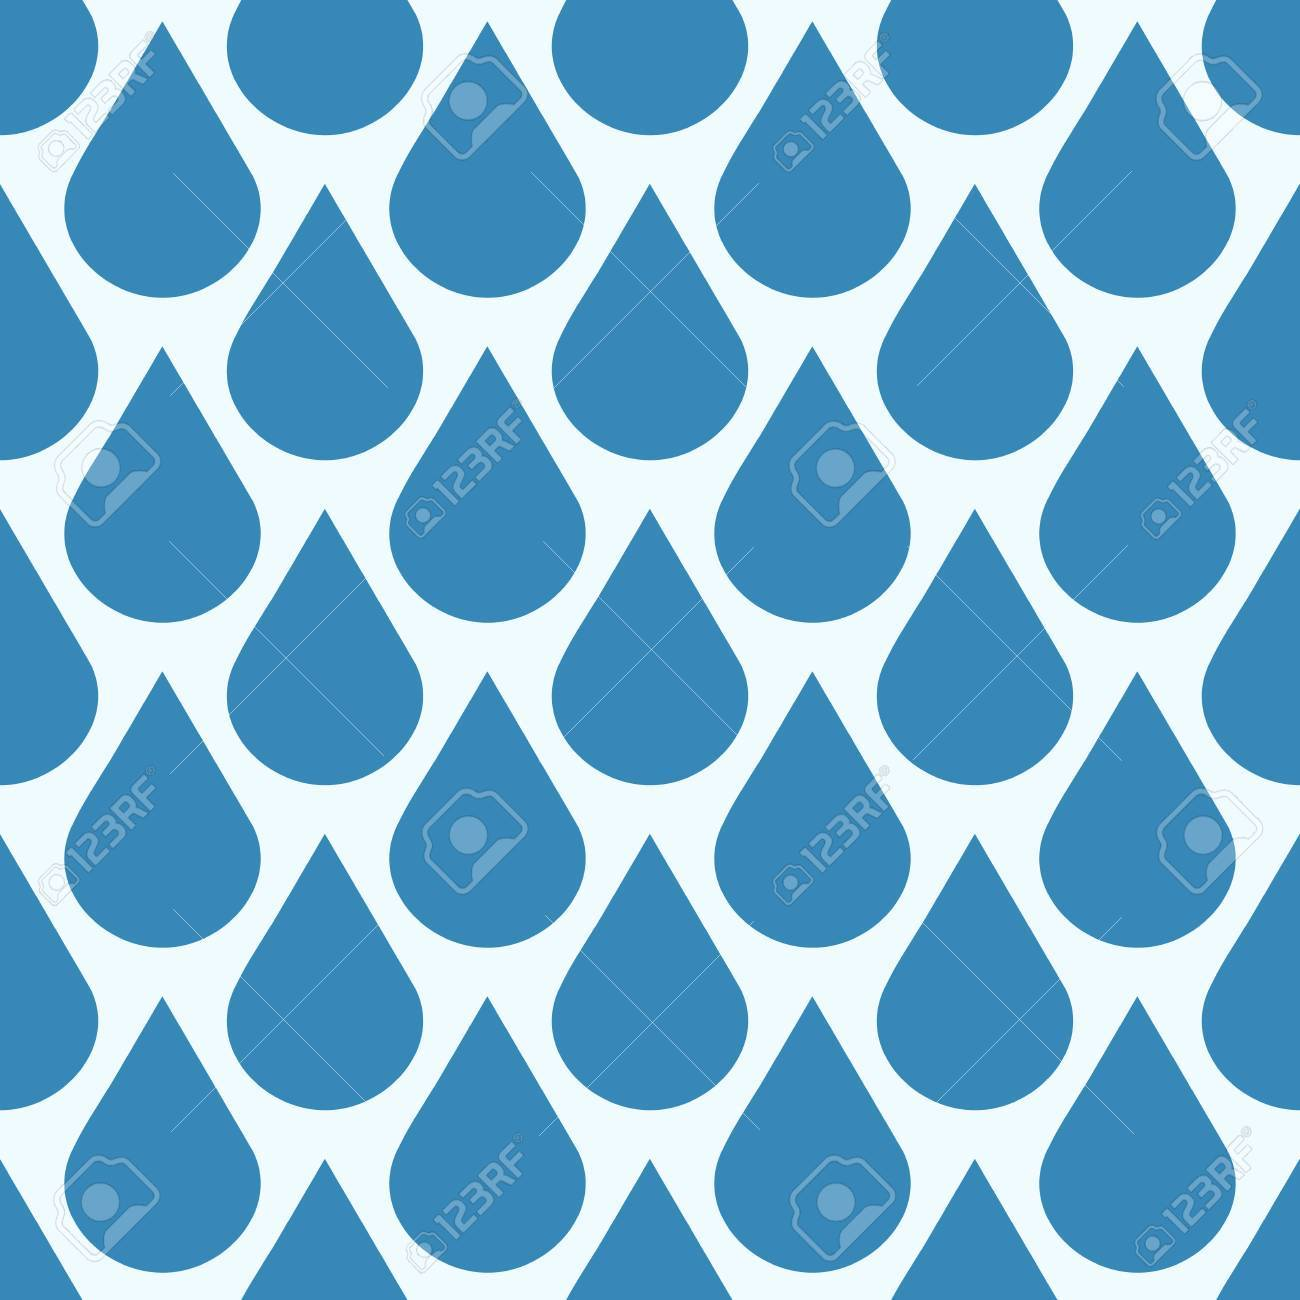 Blue vector falling water drops seamless pattern. Background wet condensation illustration - 63061285